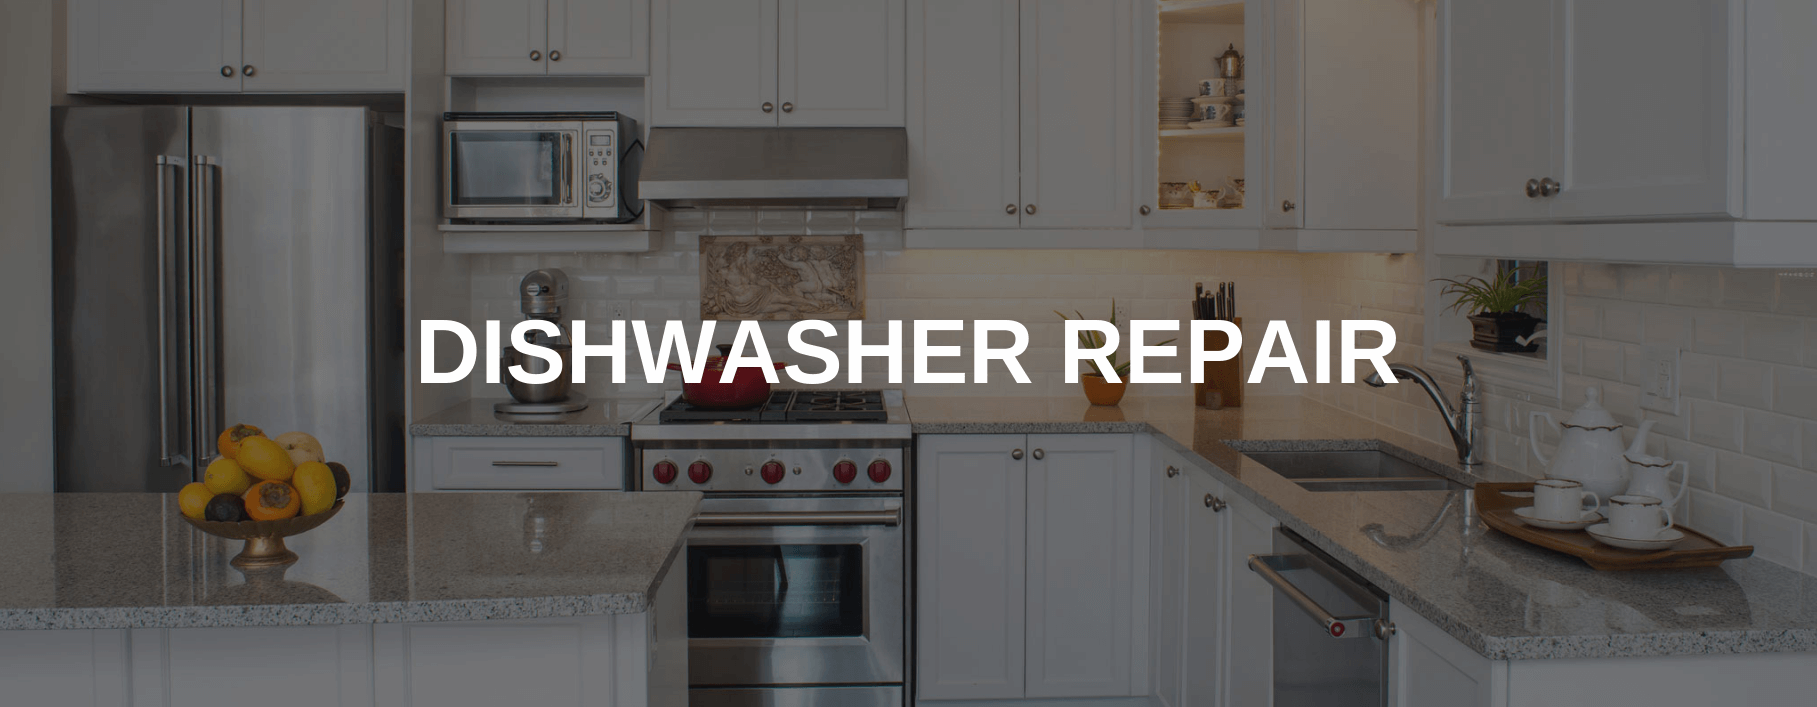 dishwasher repair eastvale